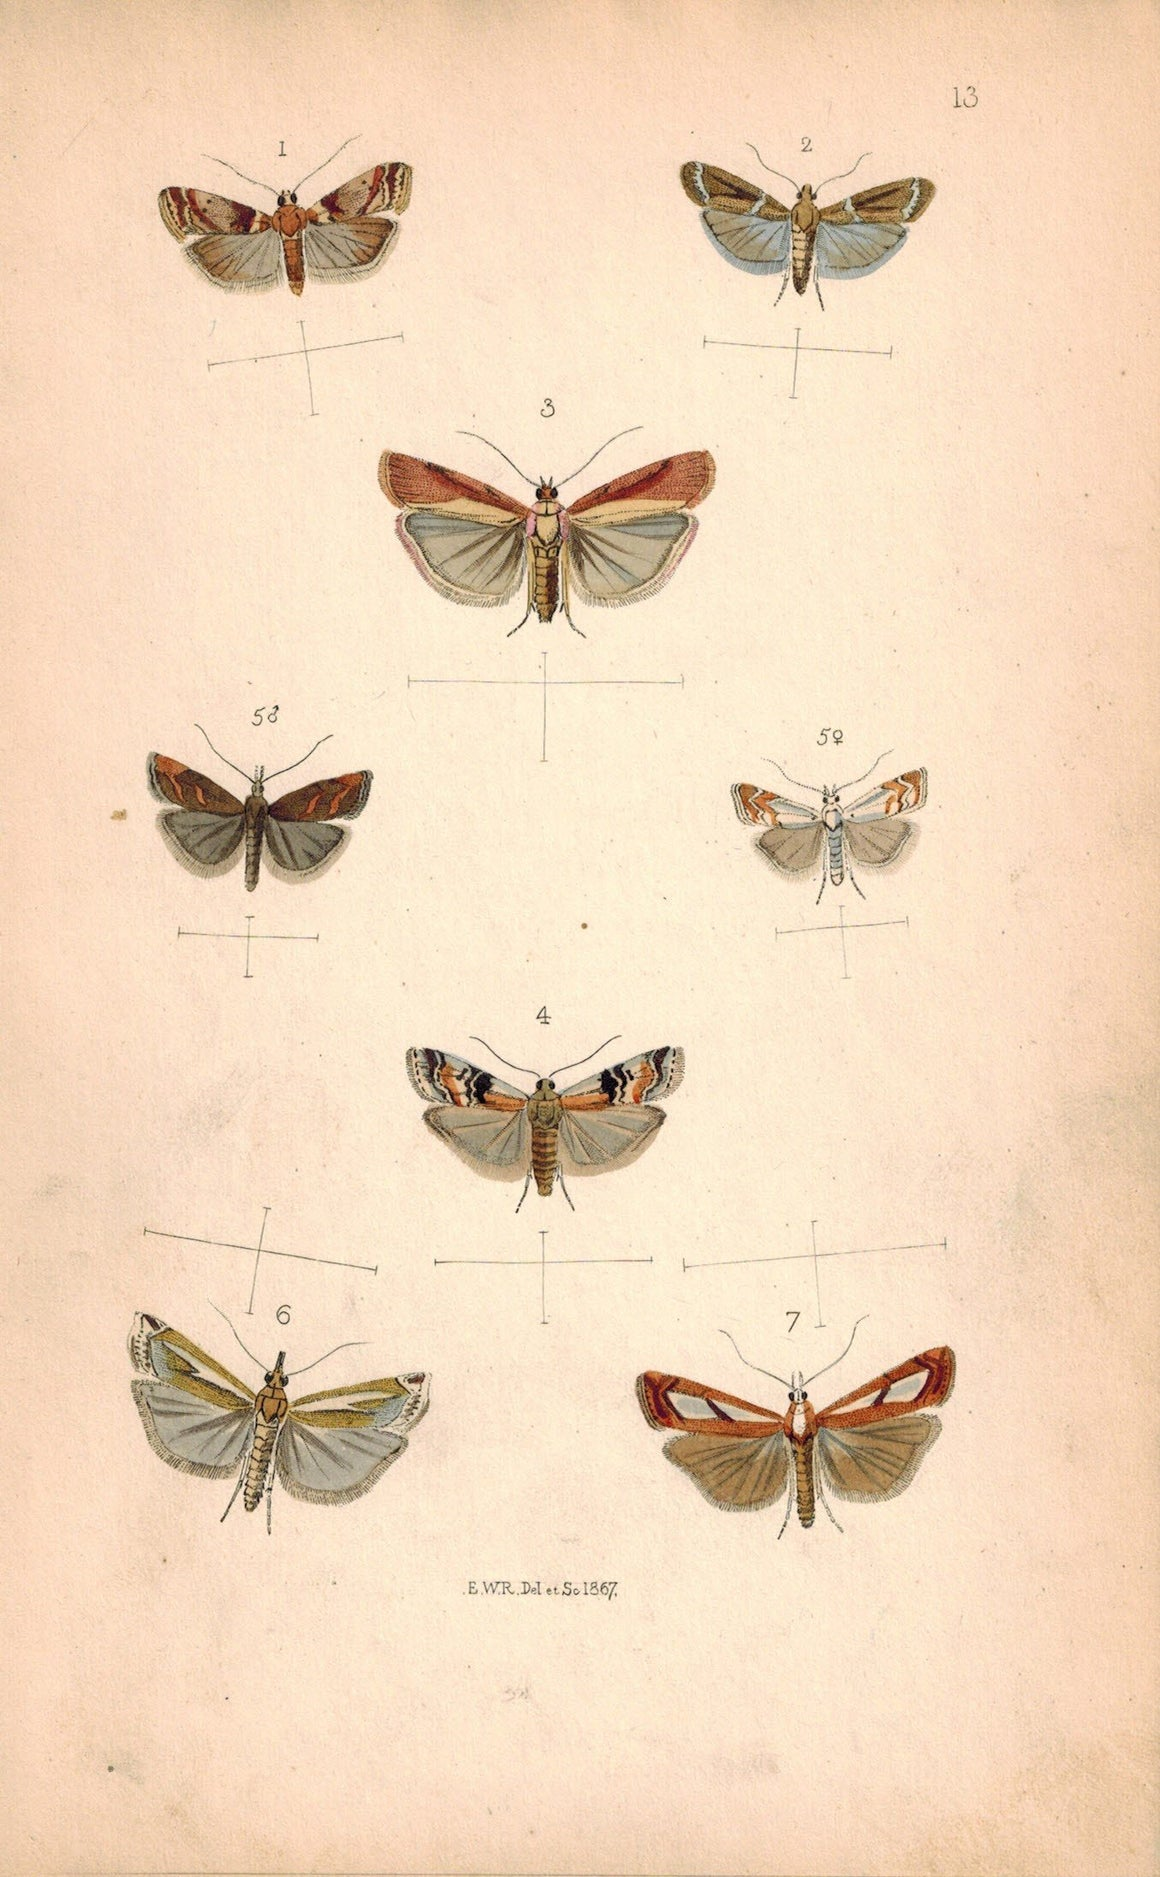 British Butterflies and Moths 1867 Print by Robinson Pempelia Carnella